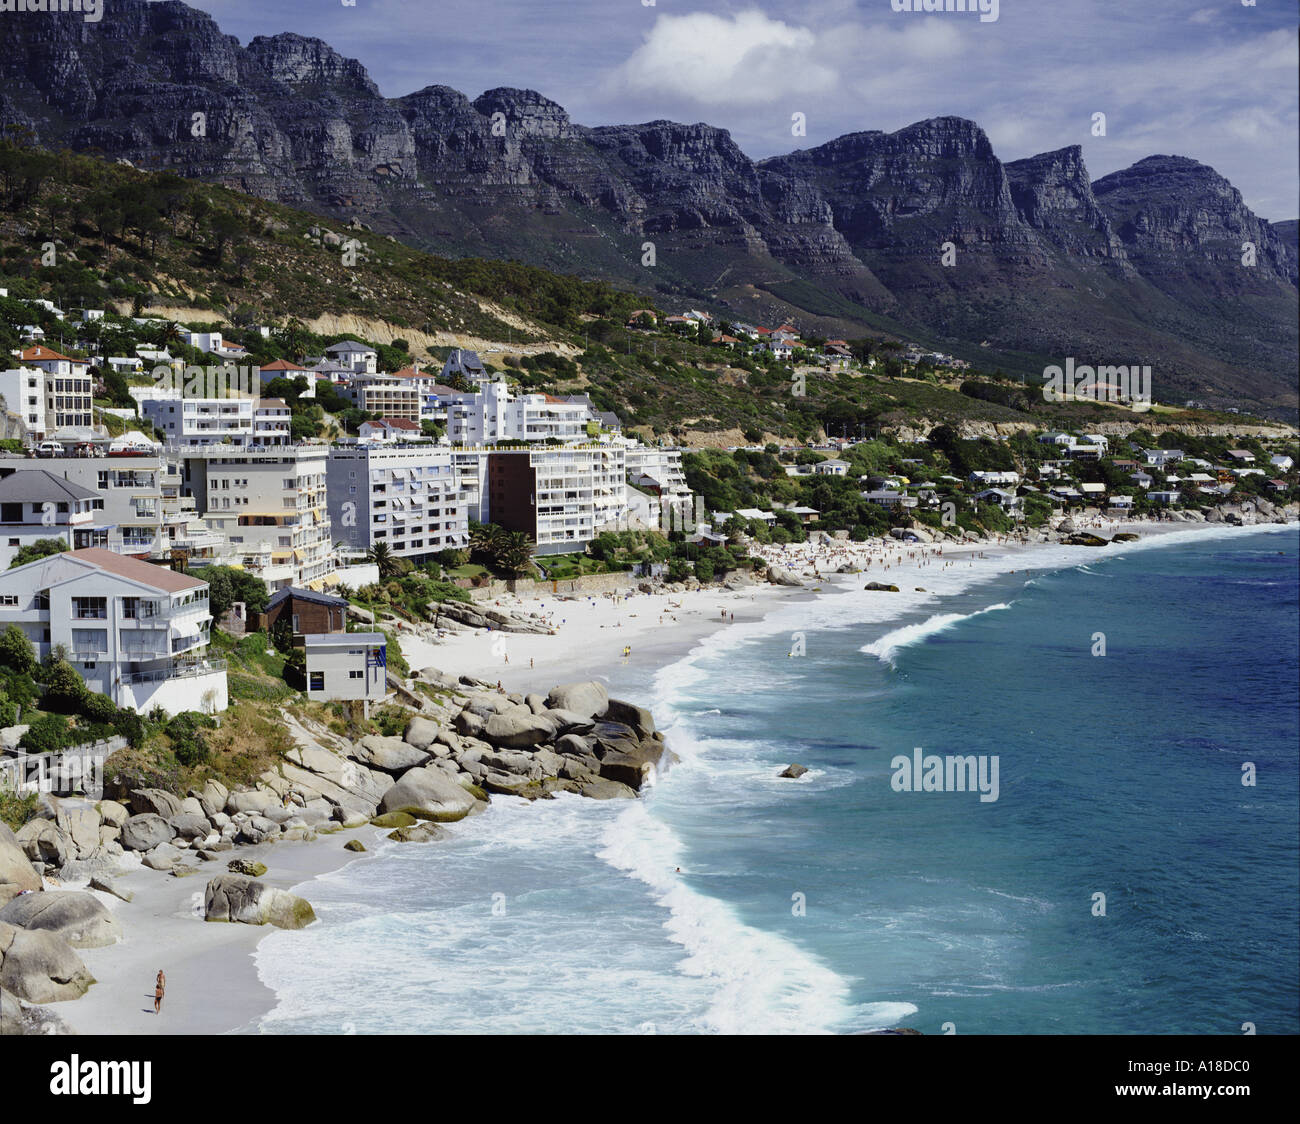 Clifton beach with the Twelve Apostles Cape Town South Africa - Stock Image